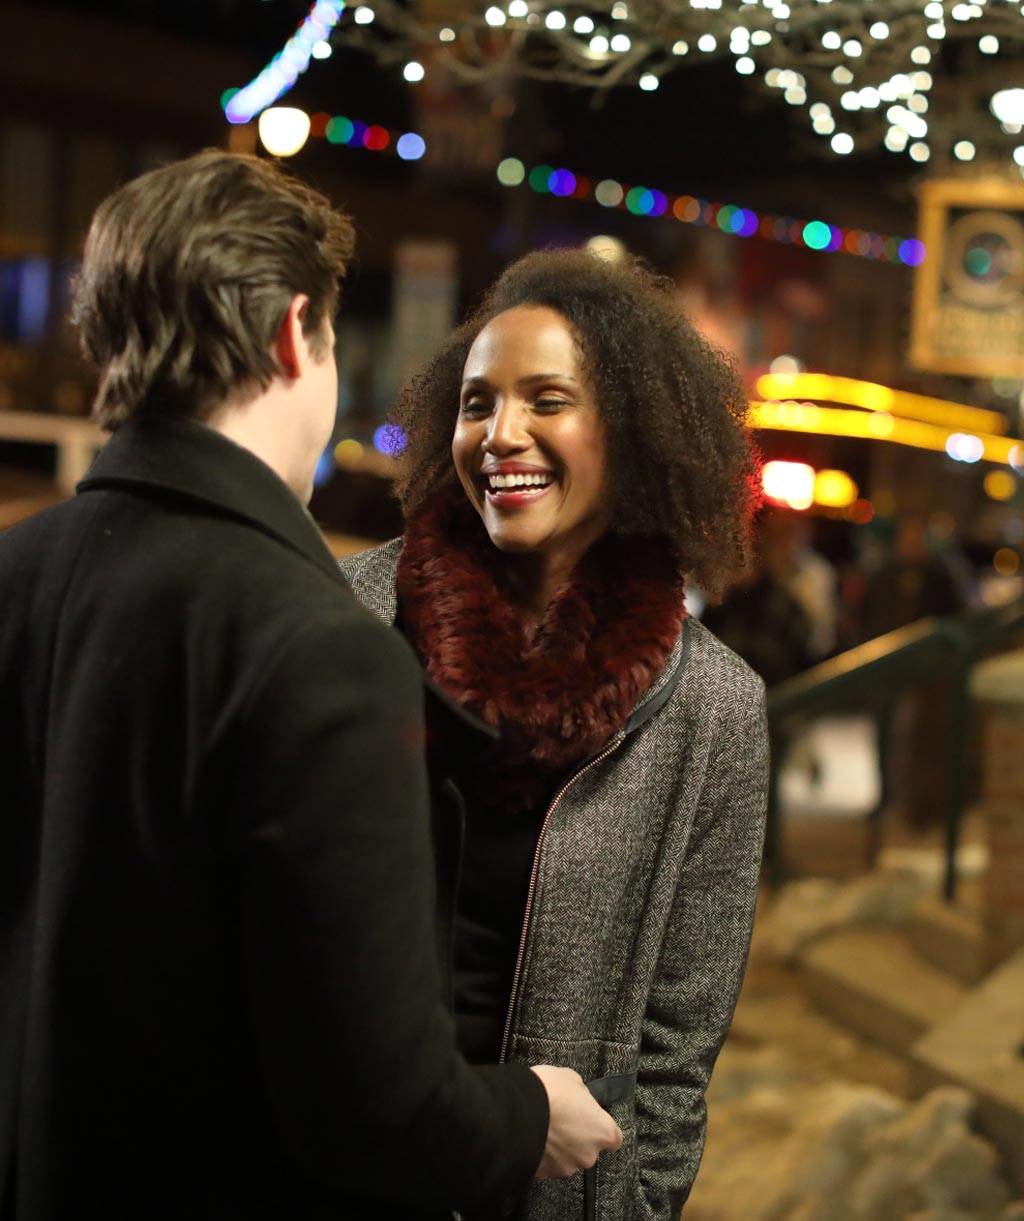 couple embracing on main street park city during wintertime